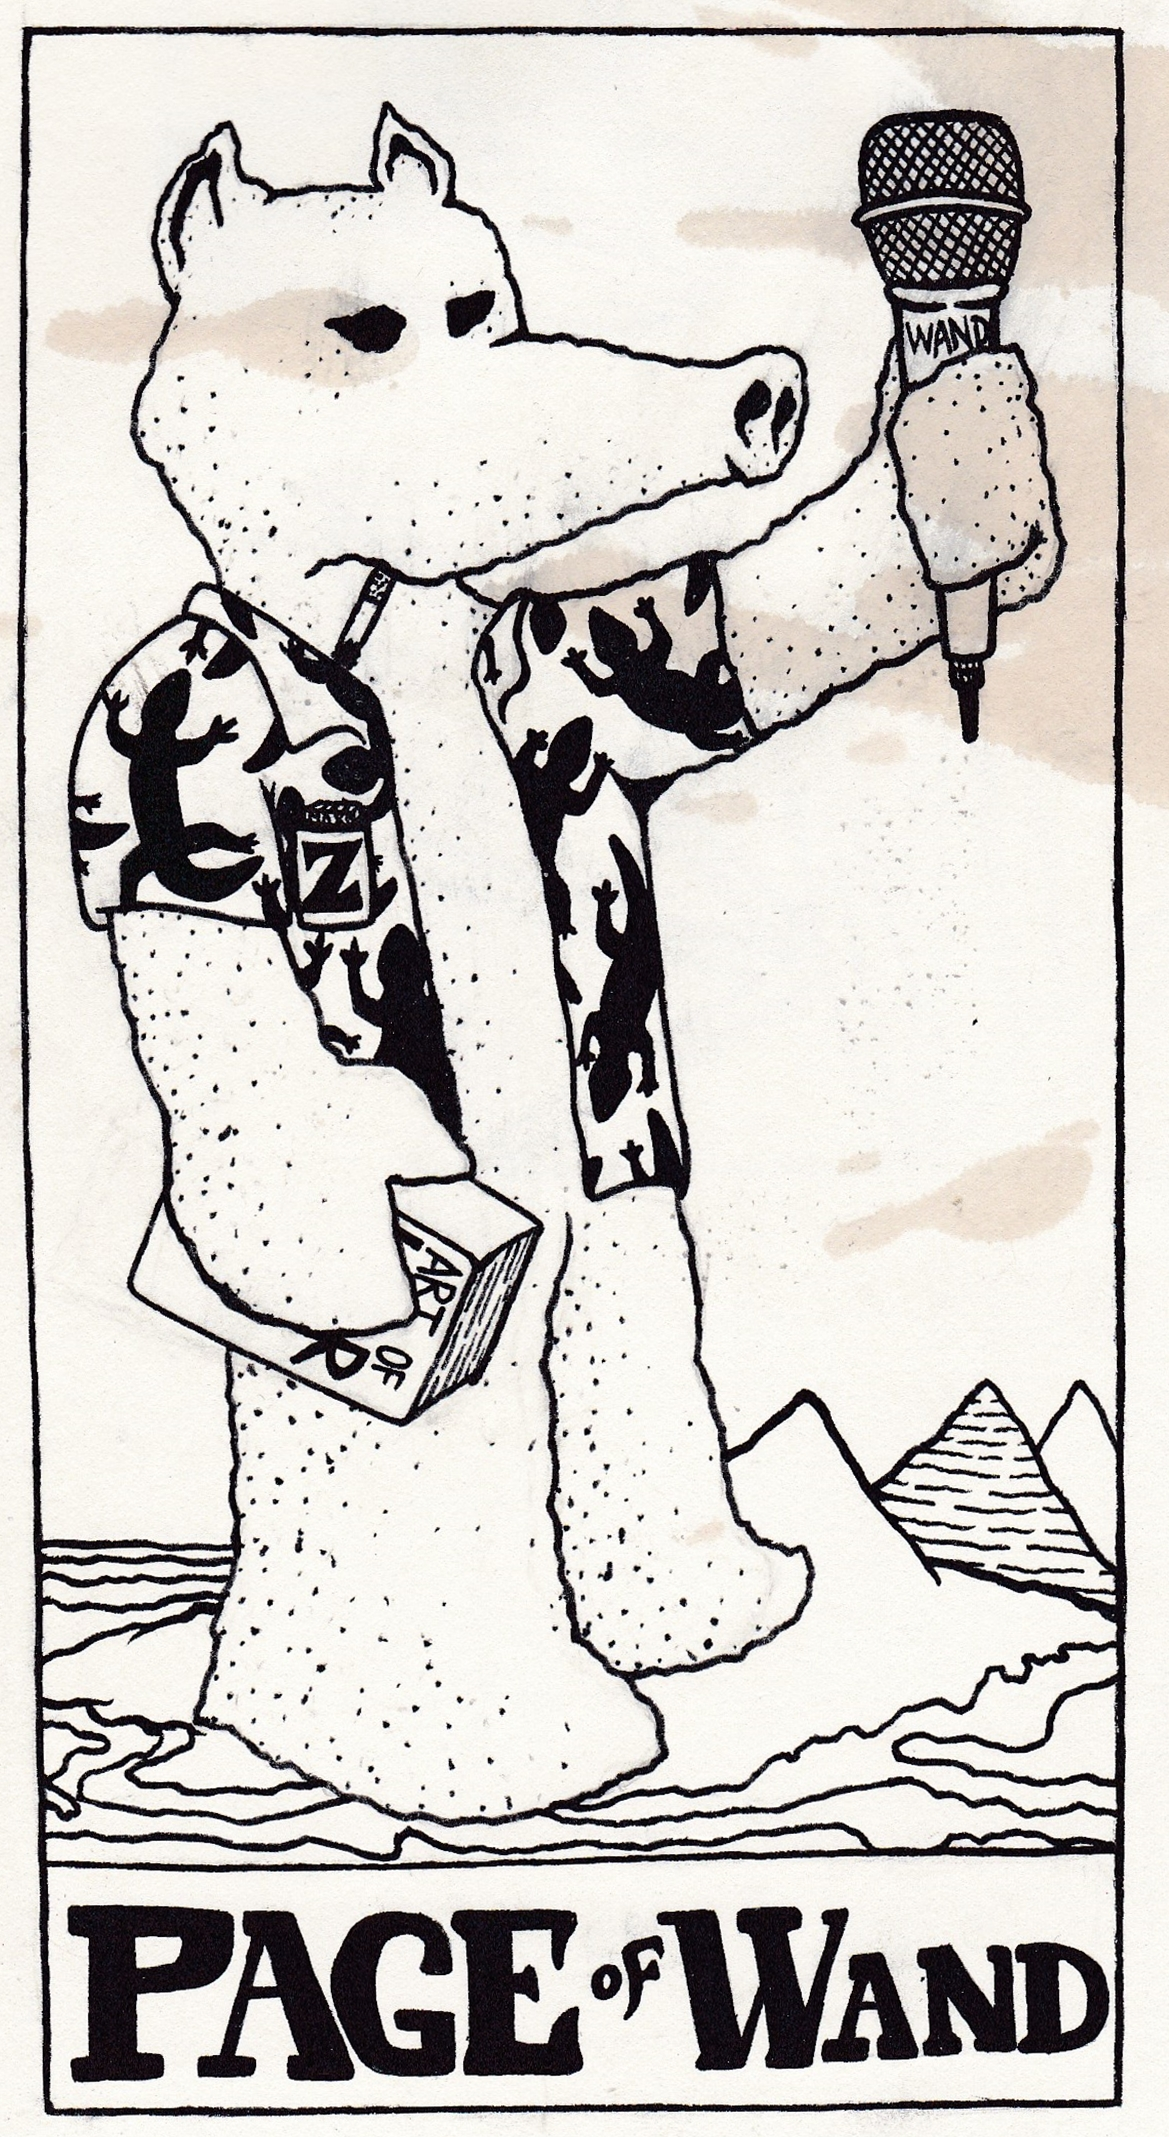 Lord Quas the Page of Wands